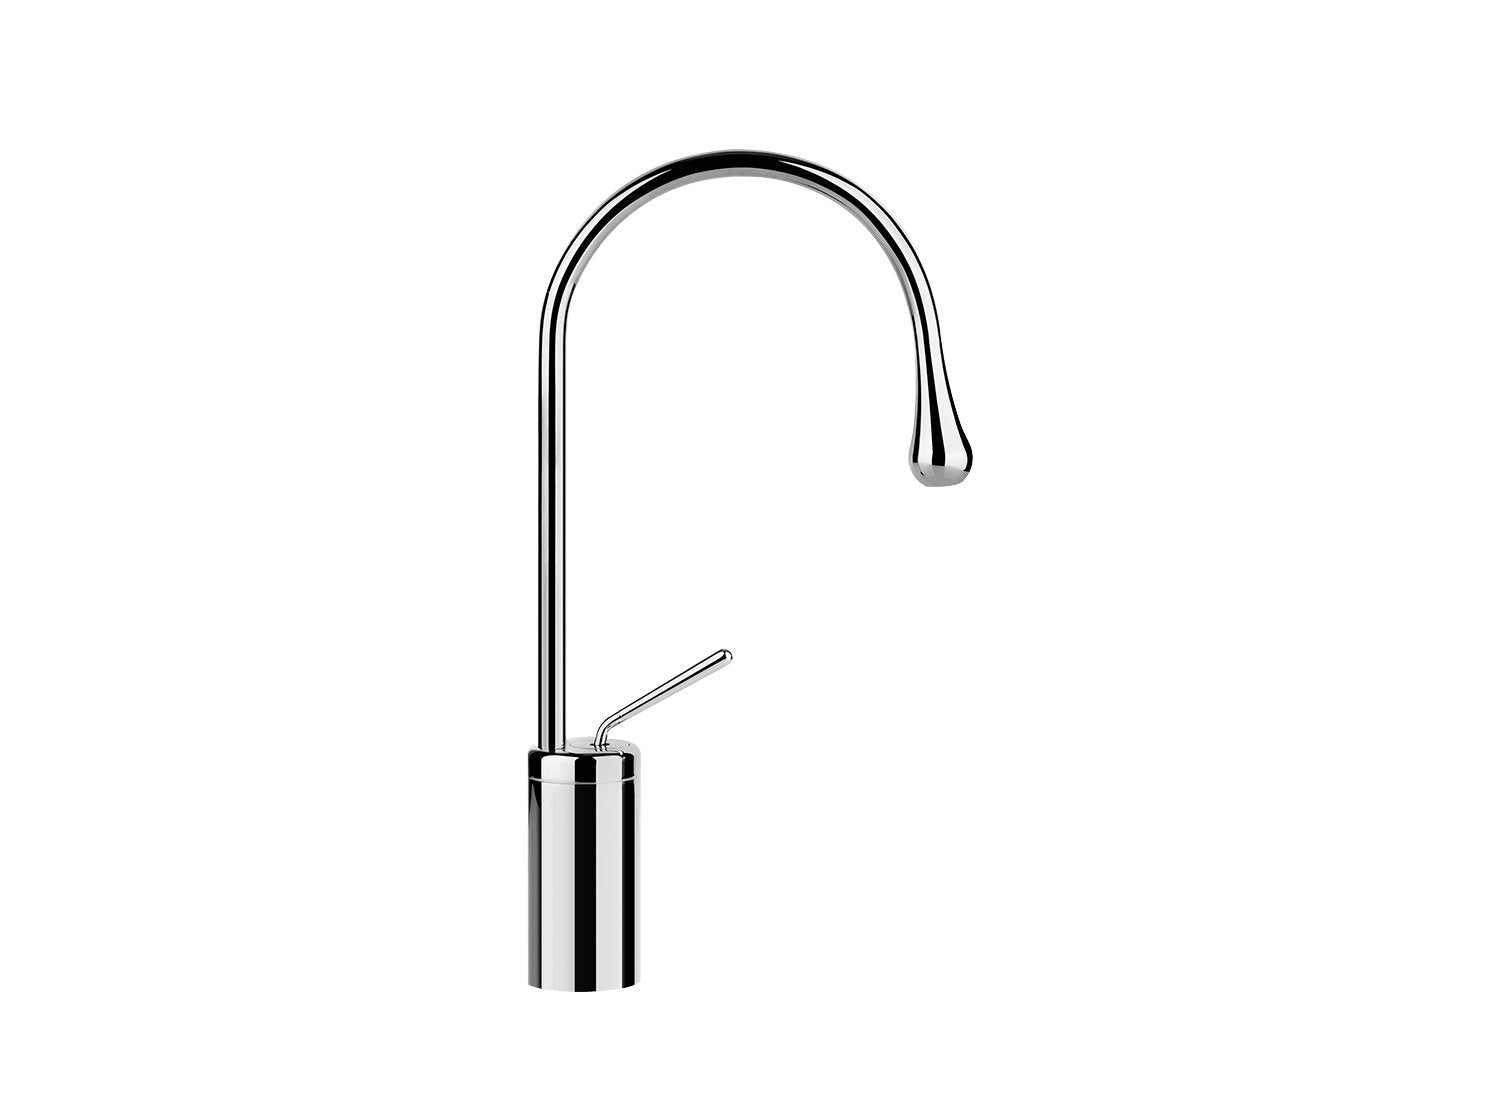 Goccia Single Lever Faucet